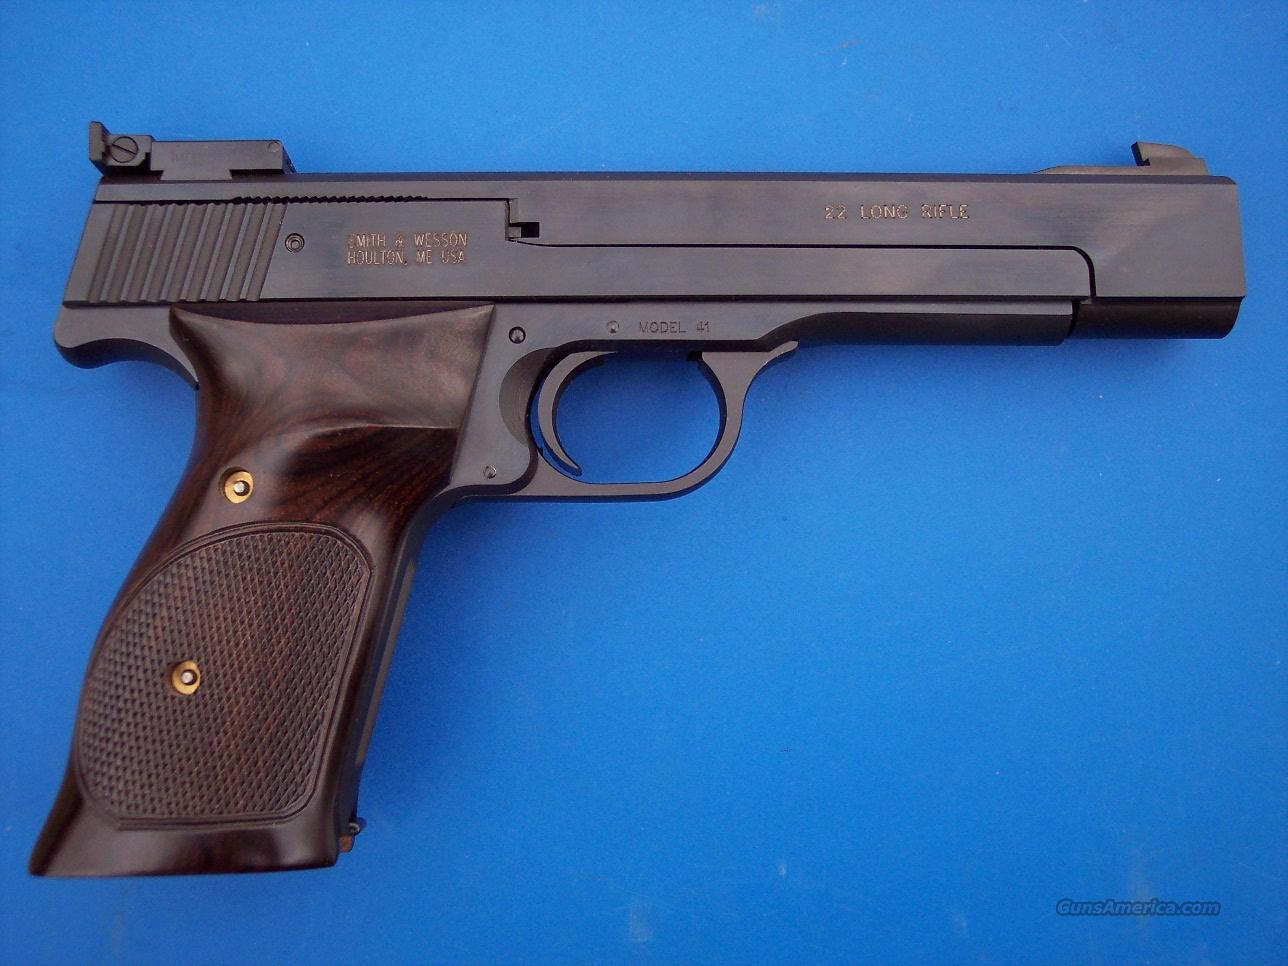 "Smith & Wesson 41 Target 22 LR  5.5"" *NEW*  Guns > Pistols > Smith & Wesson Pistols - Autos > .22 Autos"